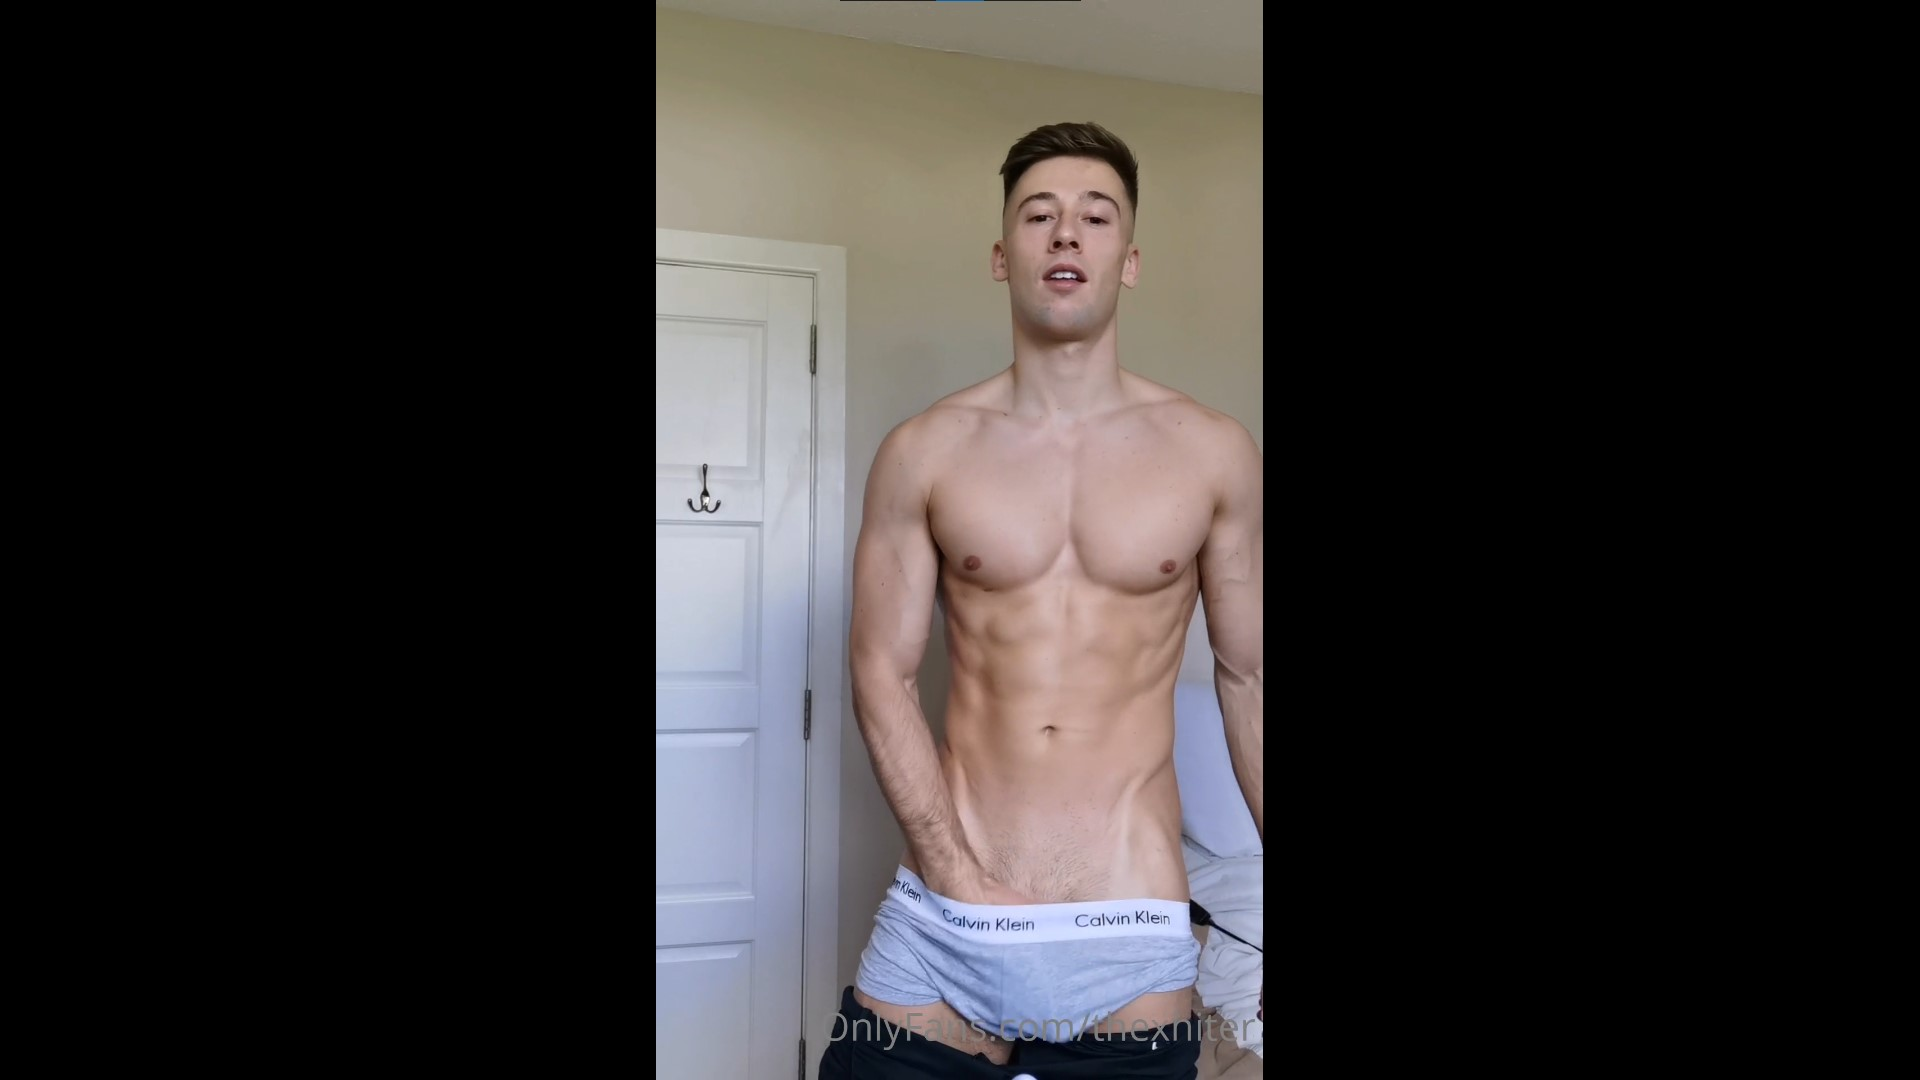 Showing off my body and jerking off - Irish-X